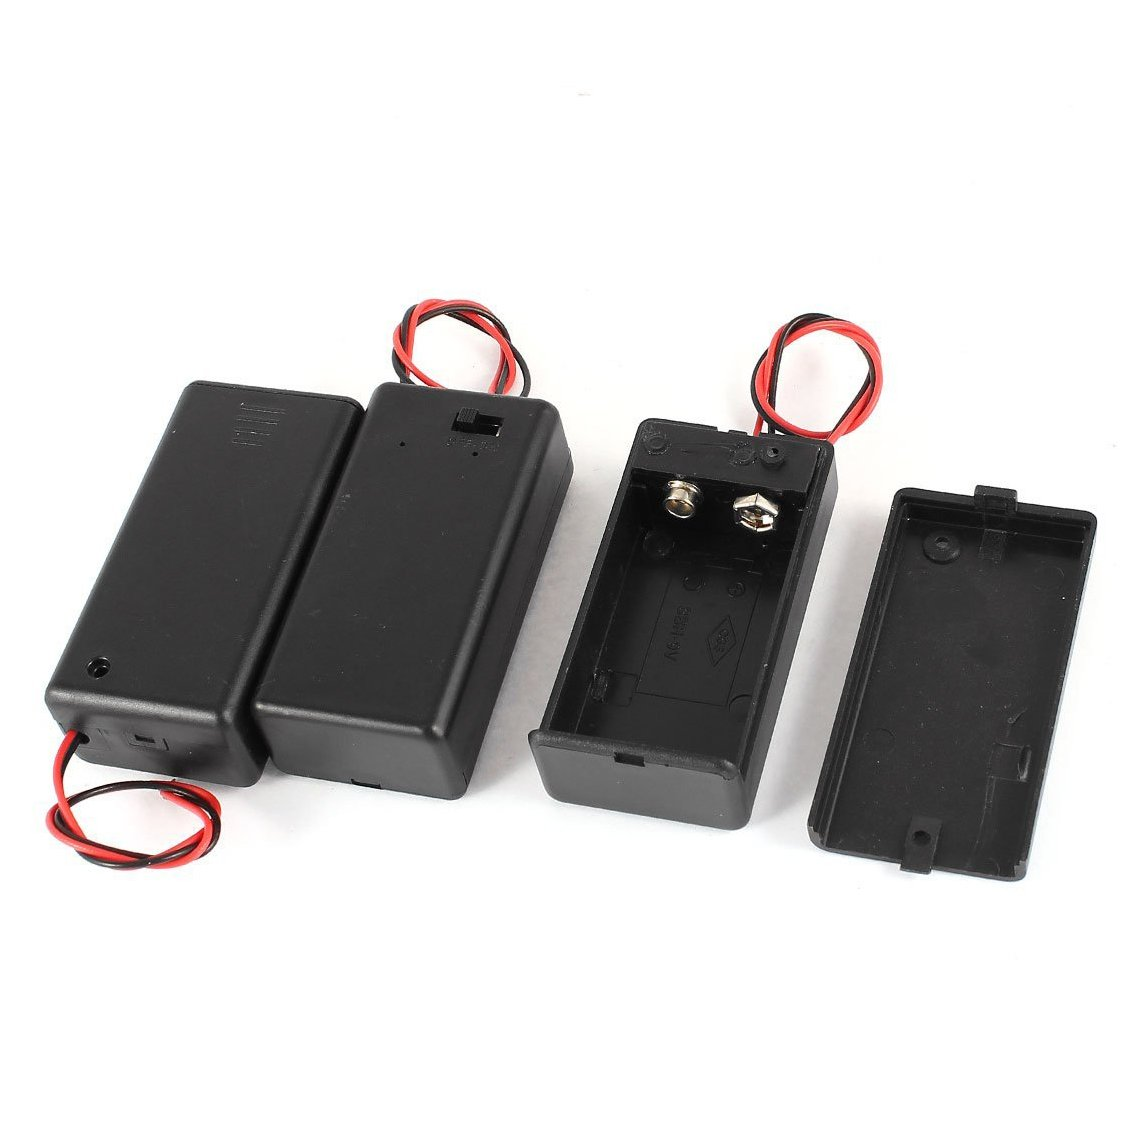 Cheap V9x Battery, find V9x Battery deals on line at Alibaba.com